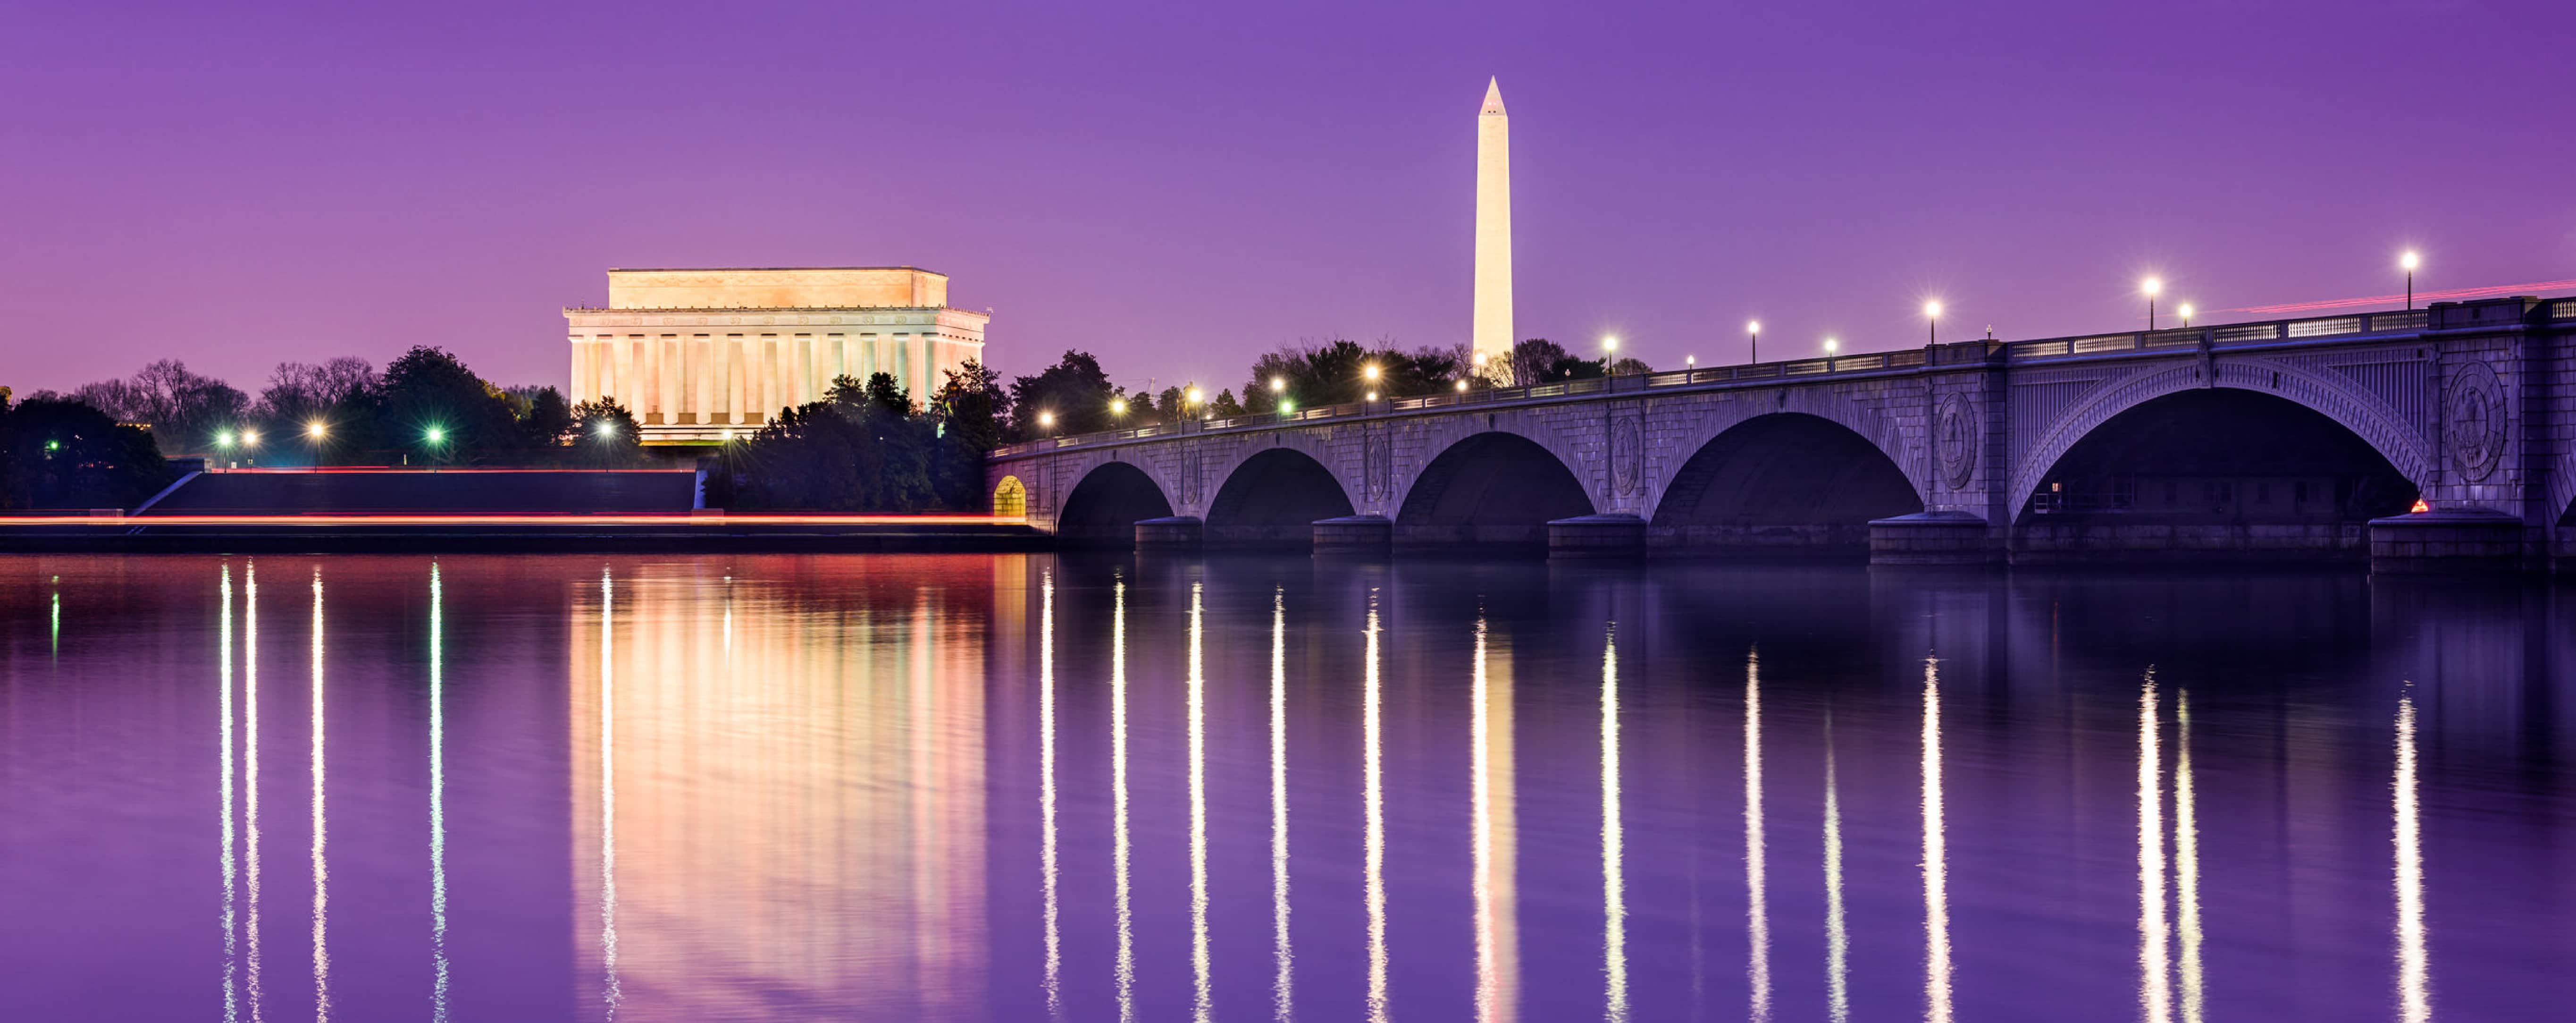 Capitol Building in a purple sunset